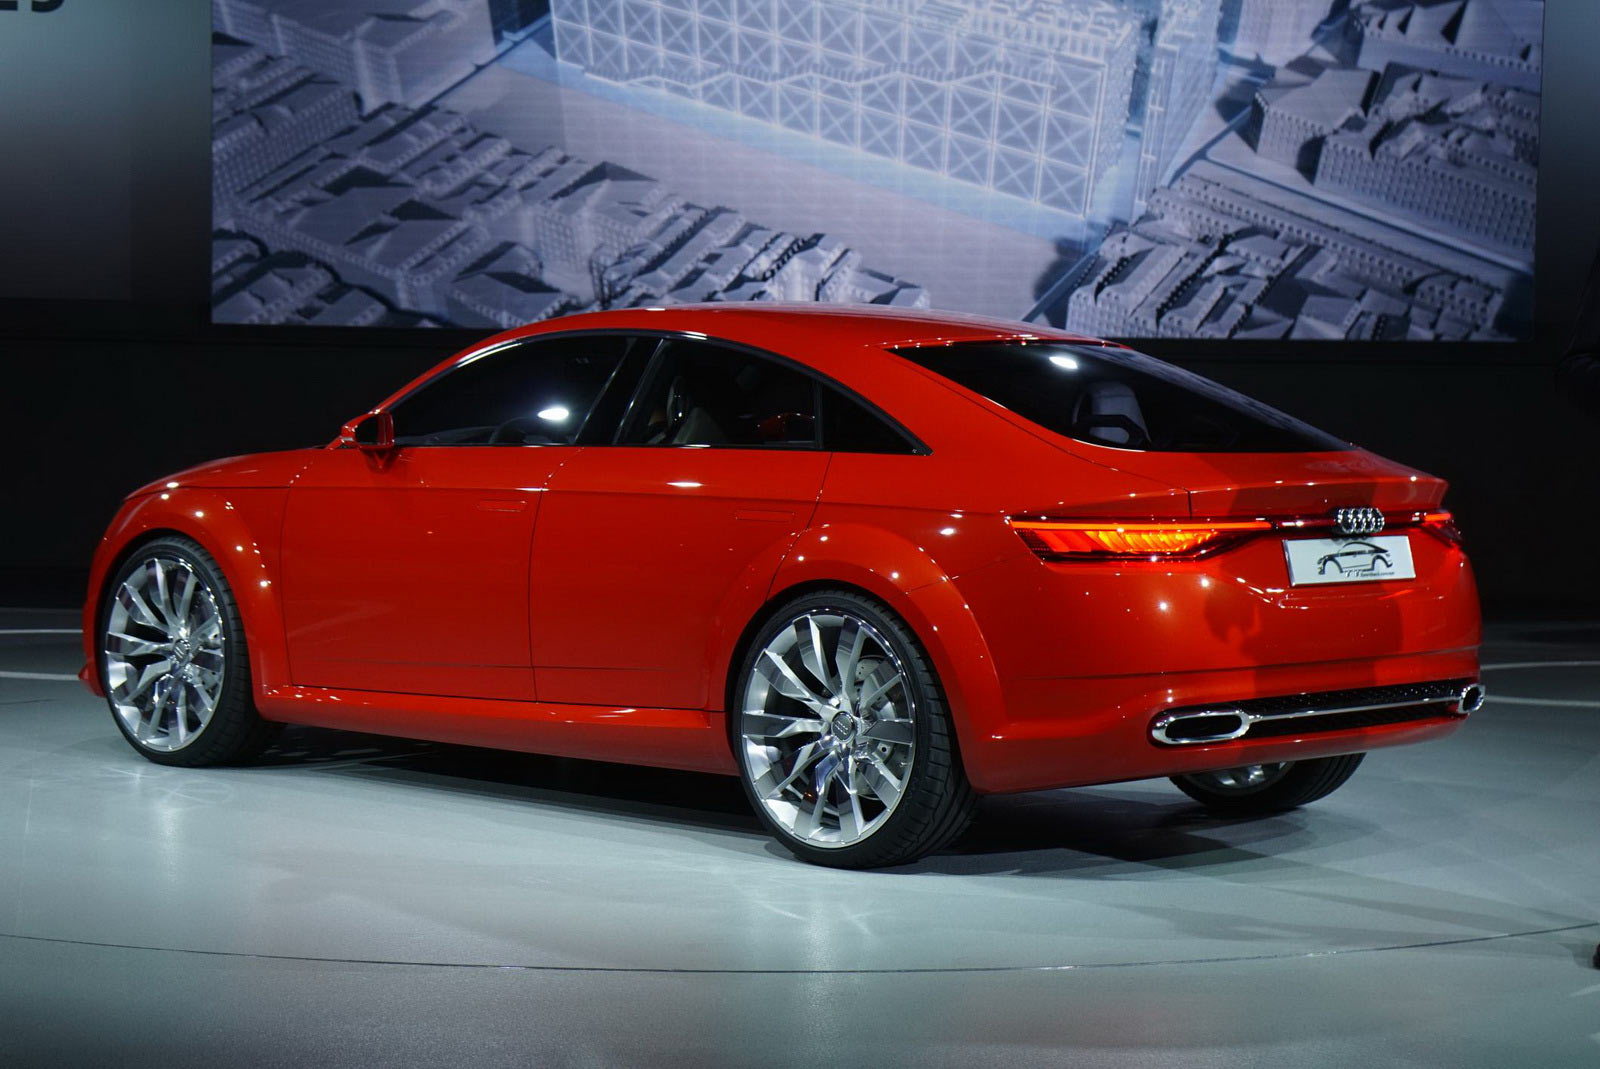 production audi tt sportback set for guangzhou auto show debut?